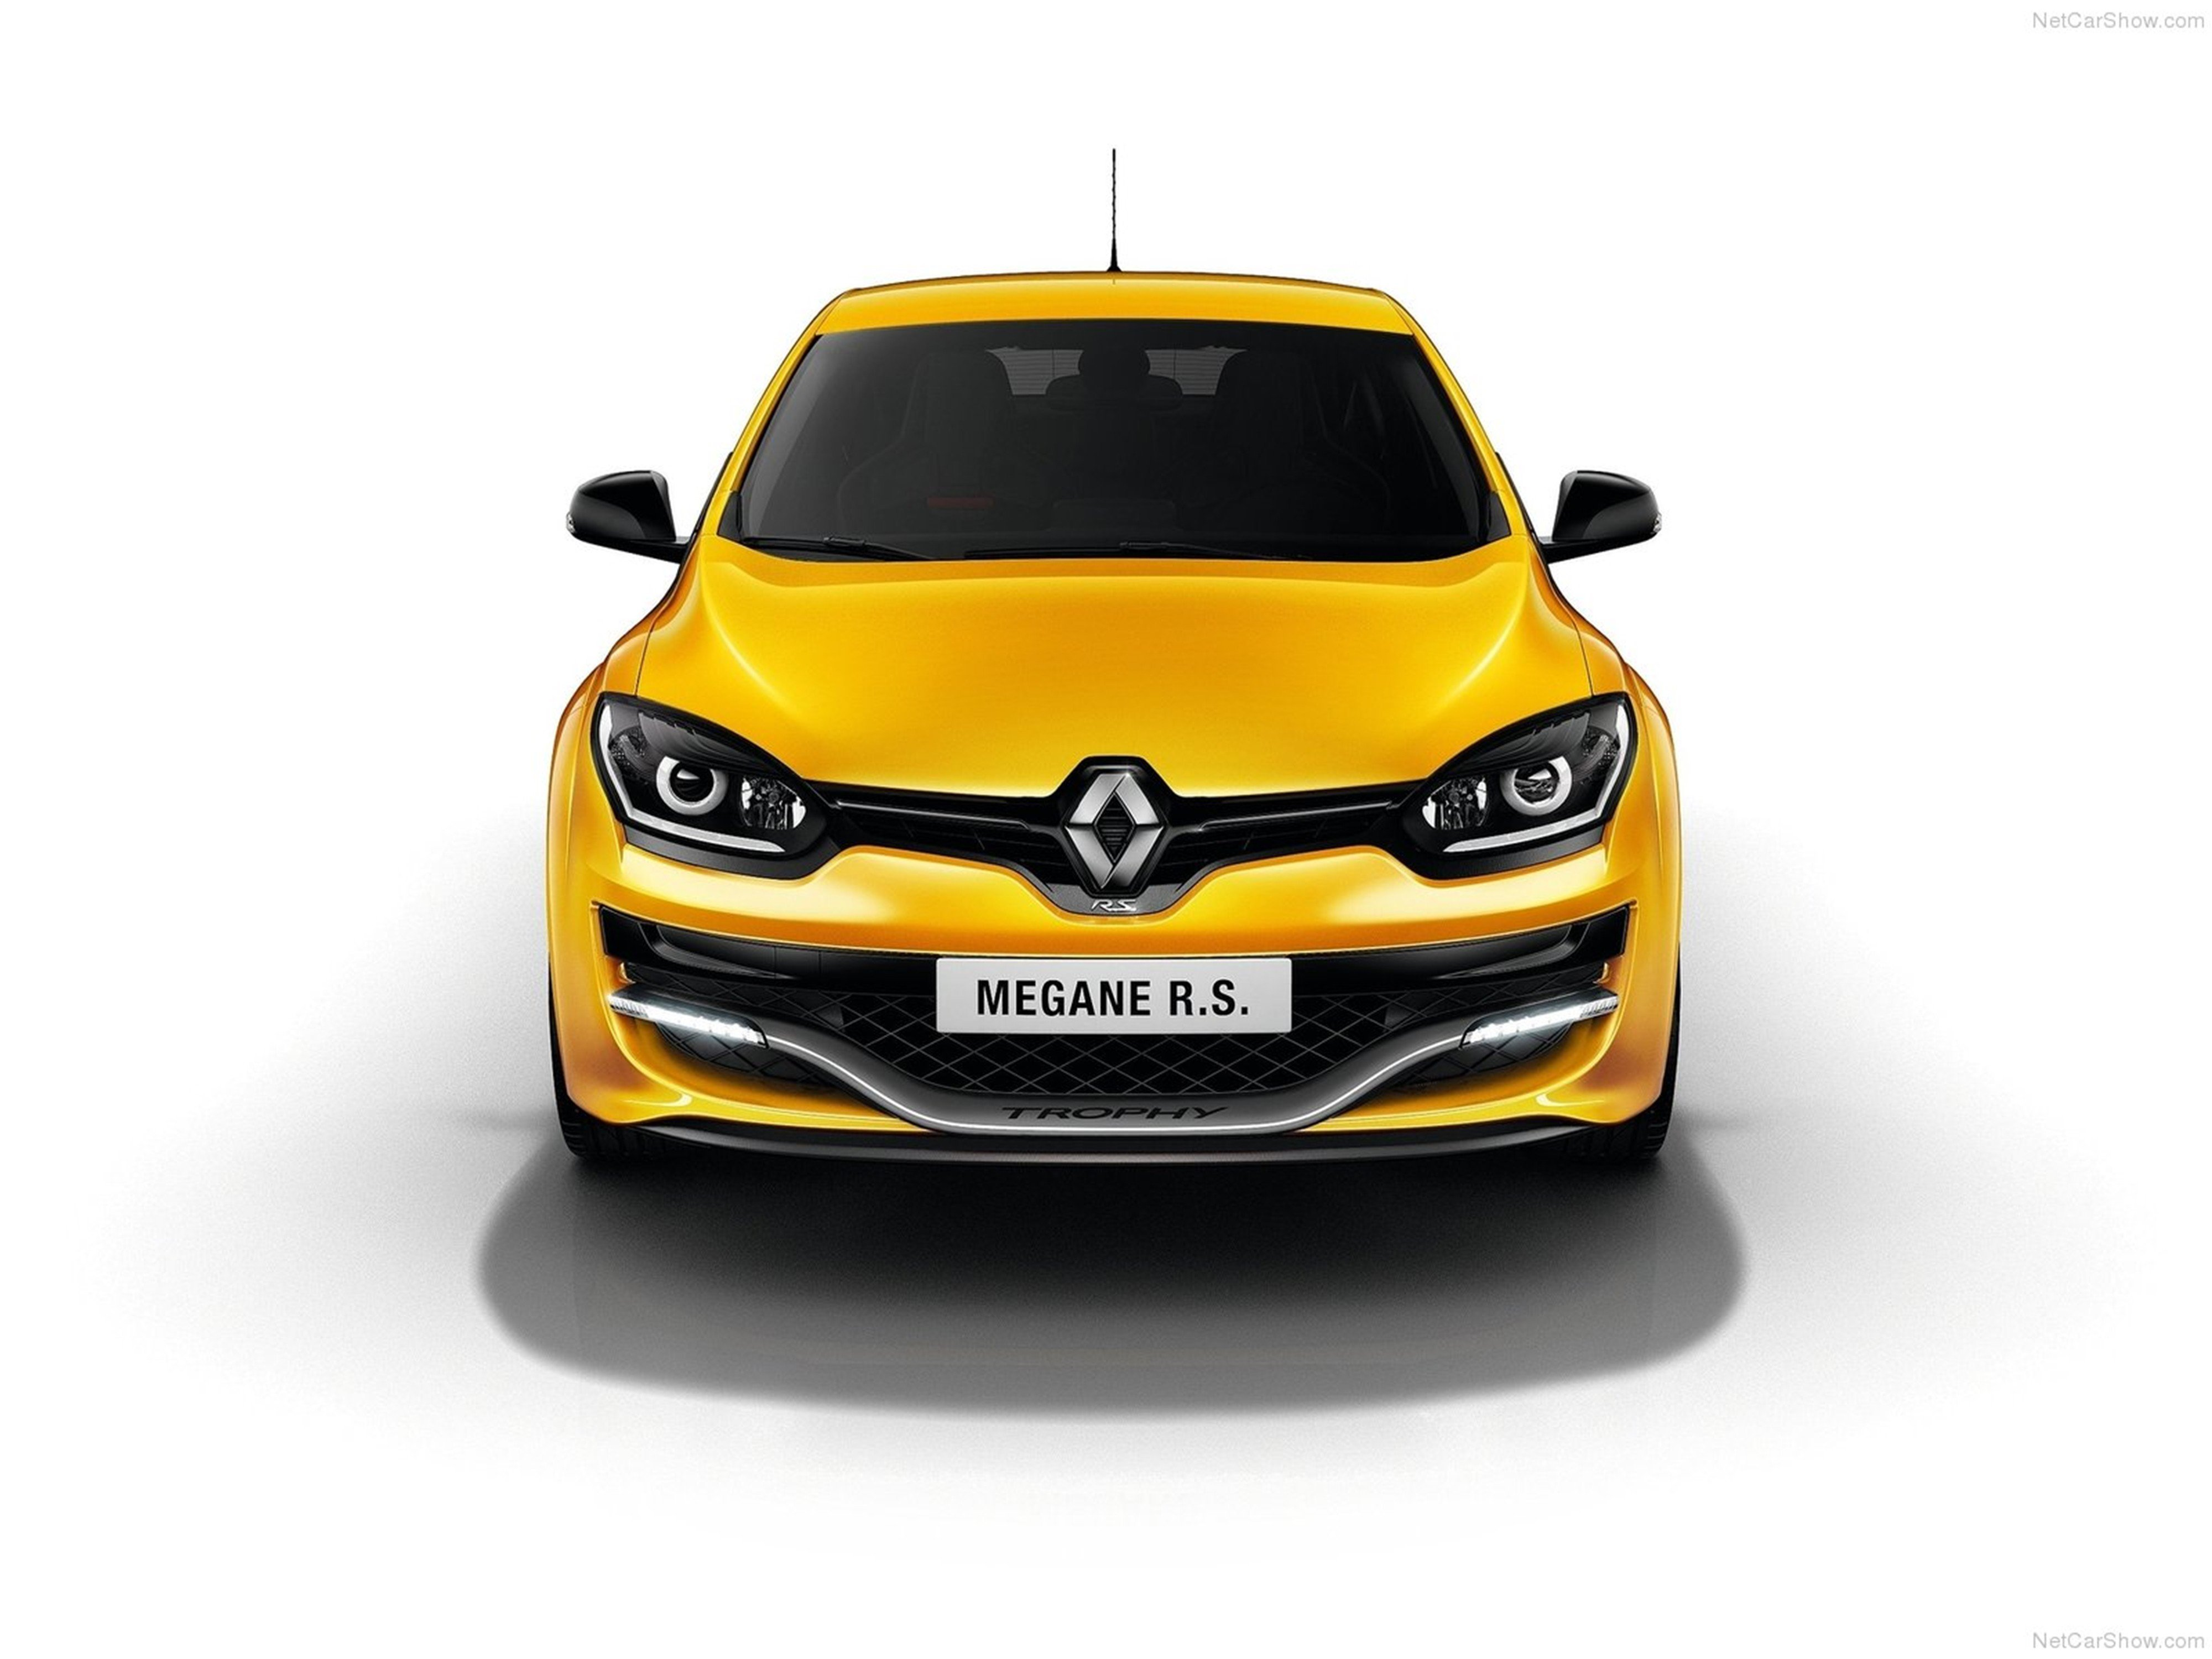 renault megane rs 275 trophy 2015 car france wallpaper sport 4000x3000 wallpaper 4000x3000. Black Bedroom Furniture Sets. Home Design Ideas